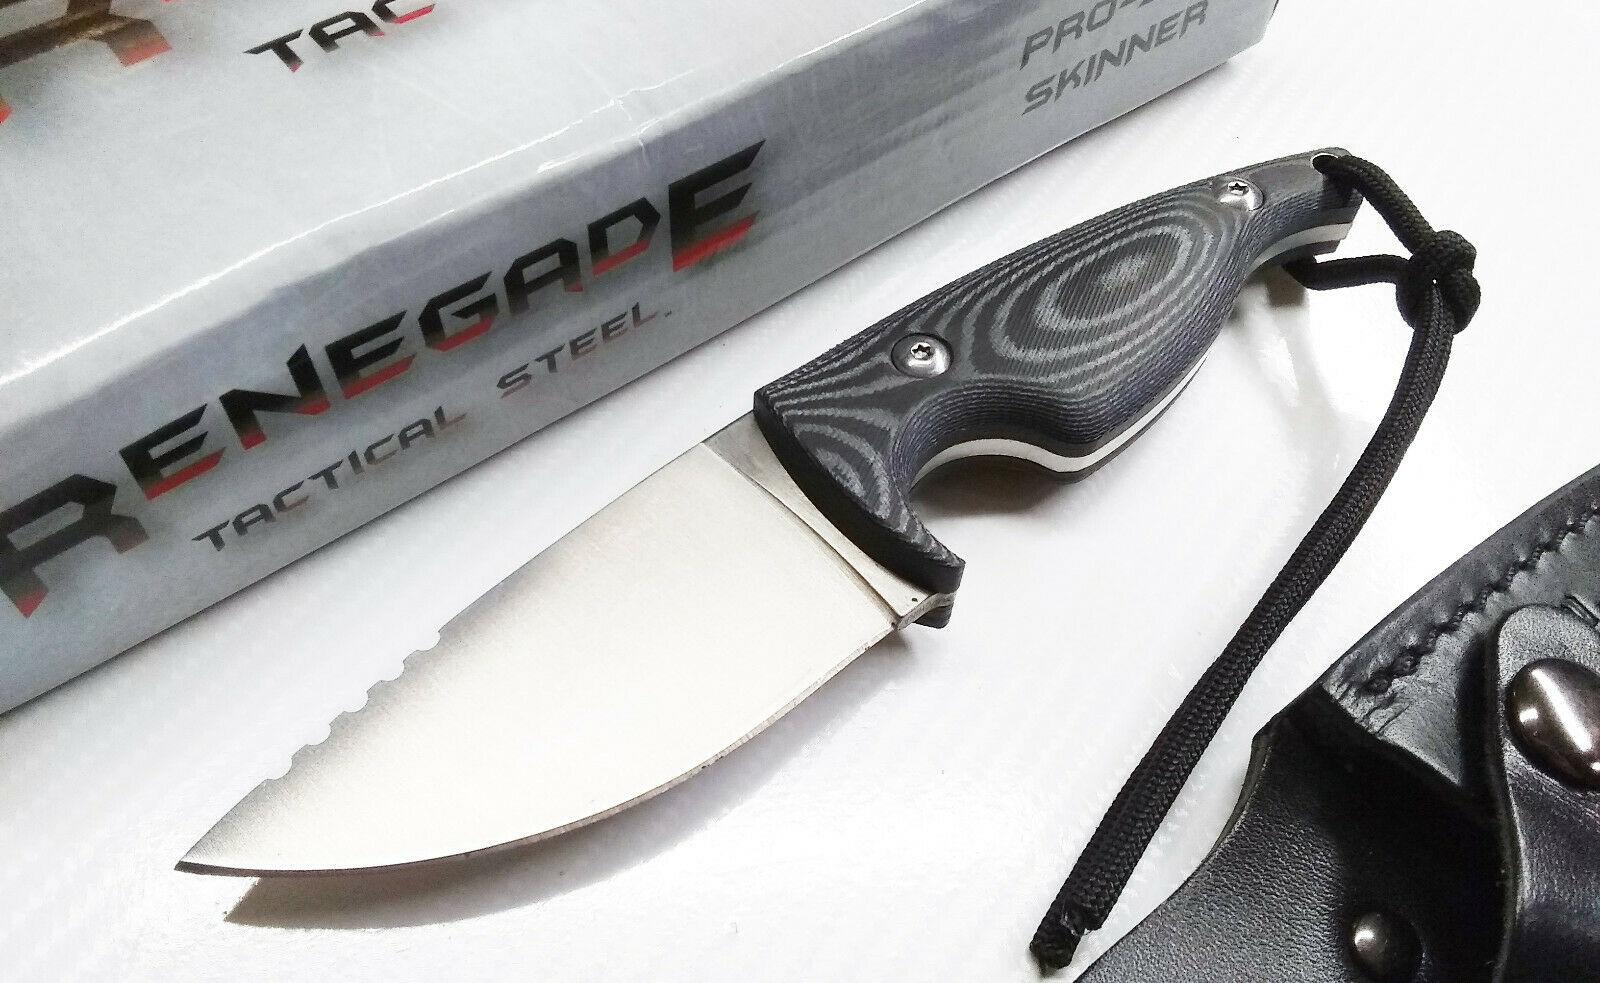 Renegade Micarta Fixed Blade Knife Concealed Carry Leather Holster 7Cr17 Skinner EDC Blade